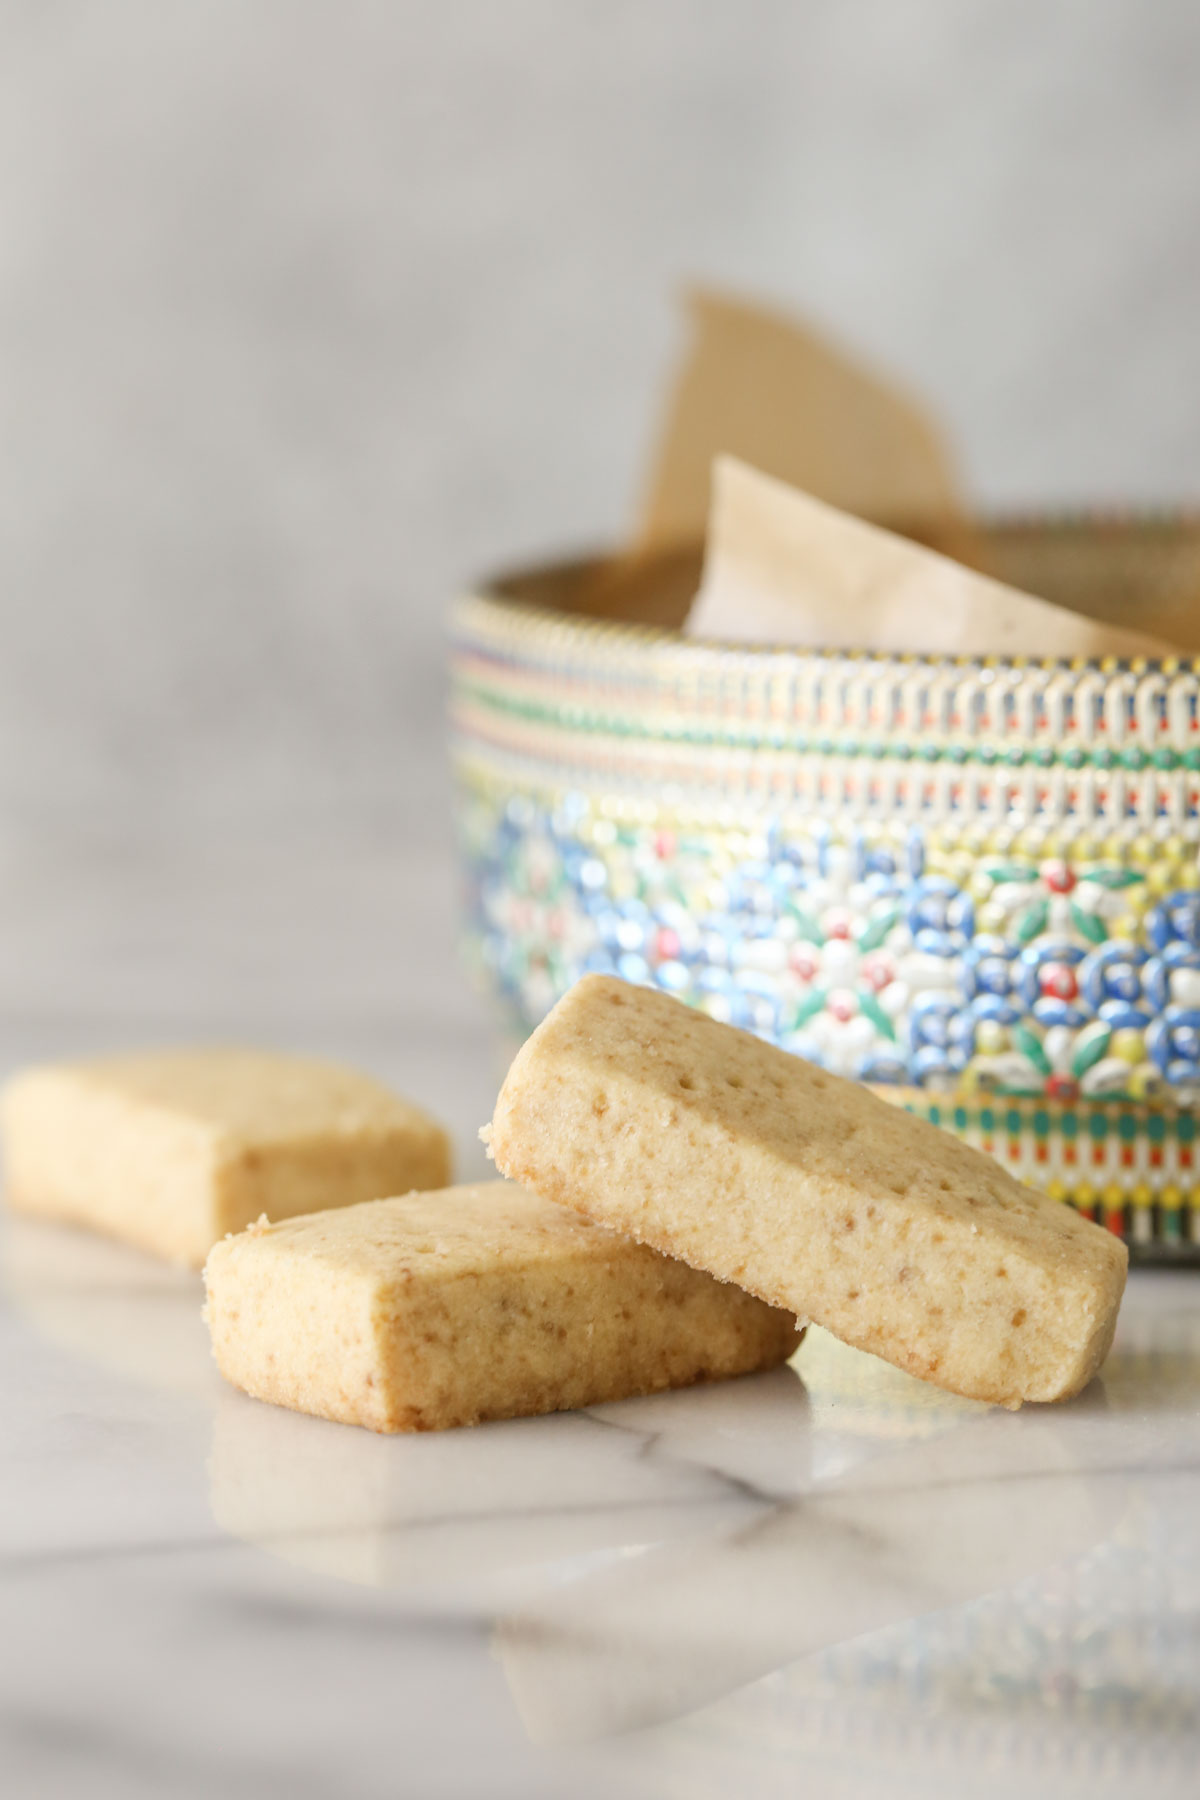 Close up shot of two Buttery Shortbread Cookies stacked, with another cookie in the background next to a colorful round cookie tin.